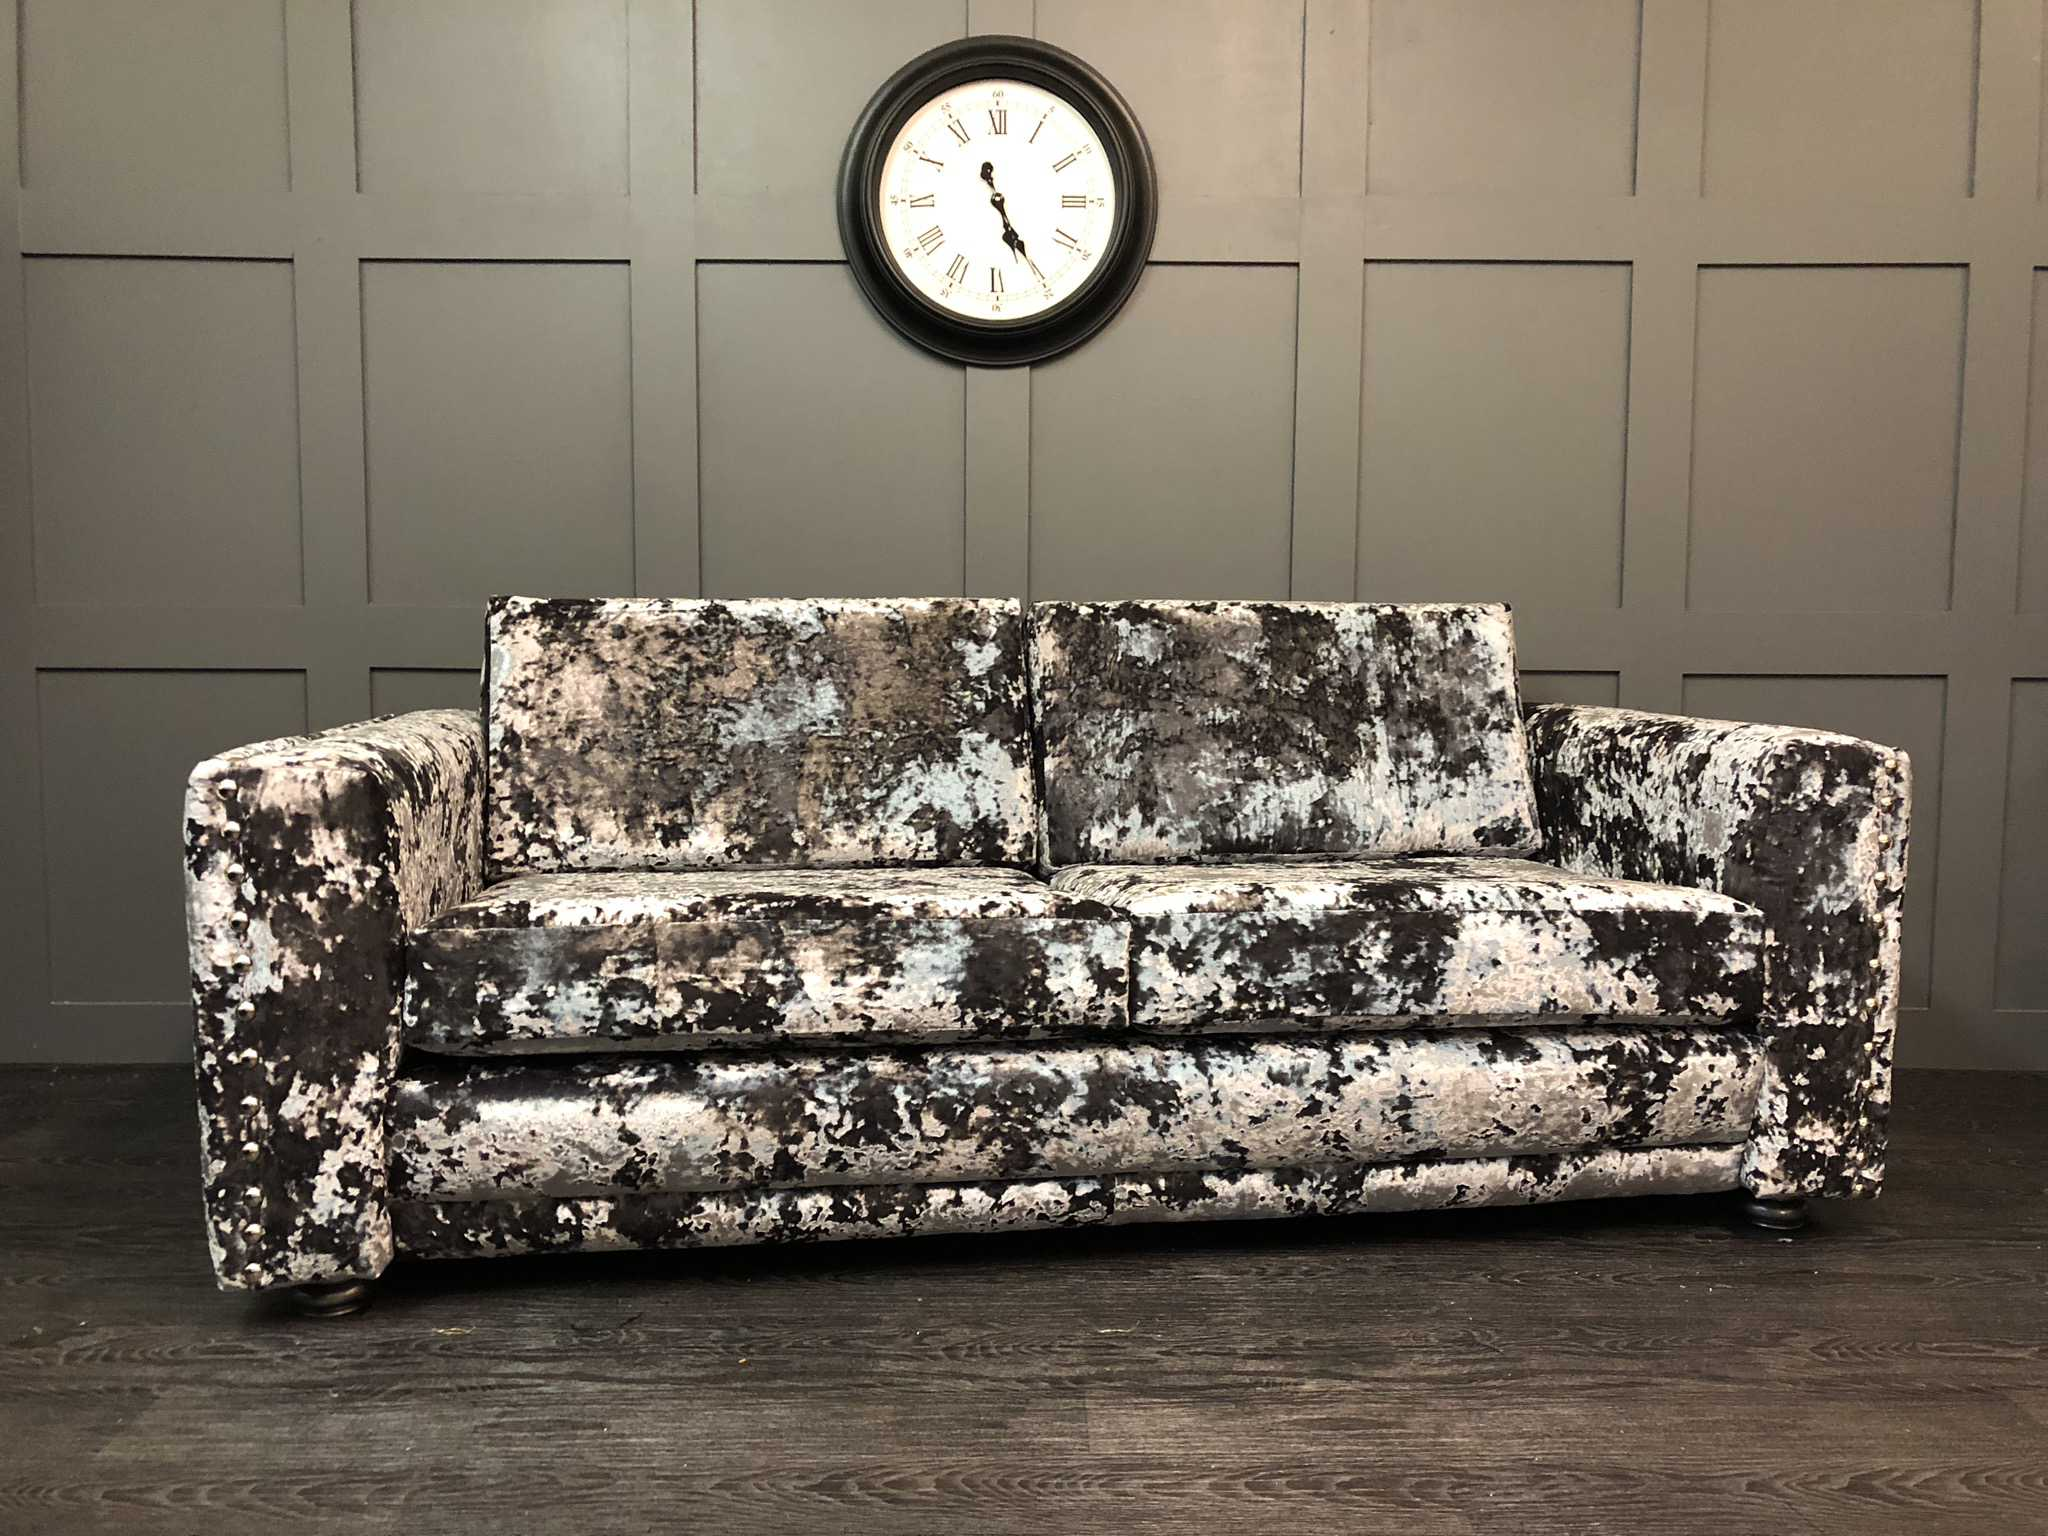 the Harrogate sofa cristina marrone flint crushed velvet